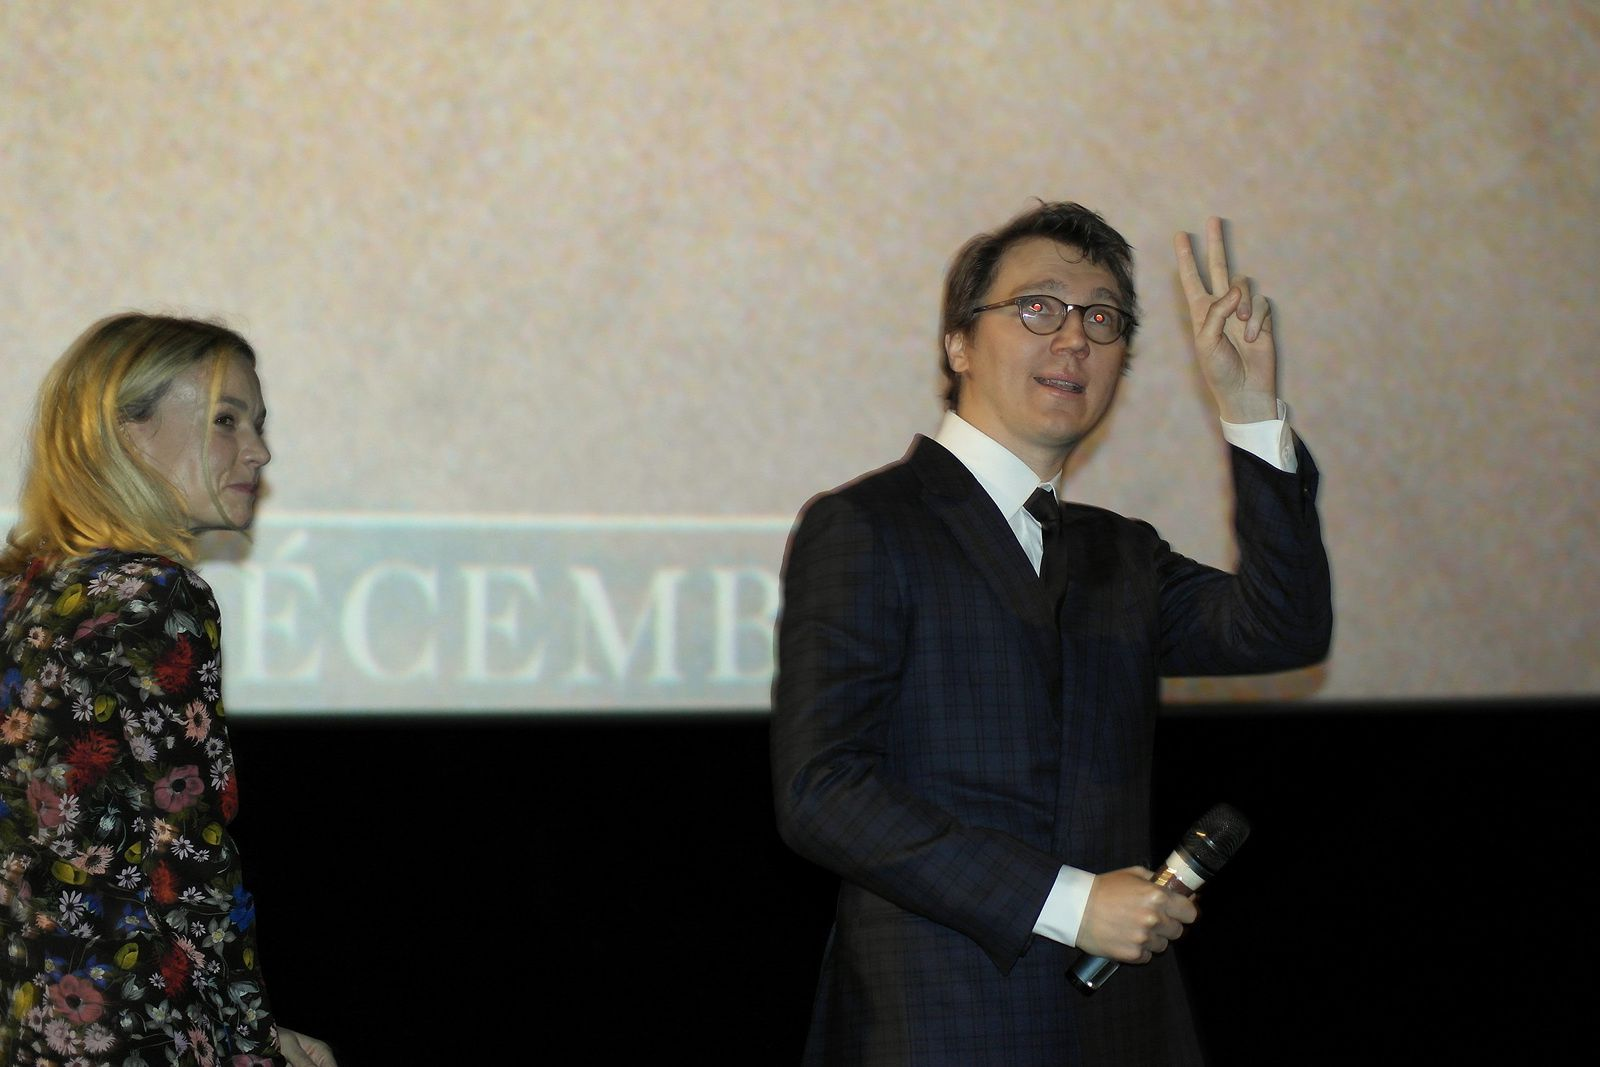 PAUL DANO, CAREY MULLIGAN, AP Wildlife à UGC Les Halles Paris (6/11/2018)